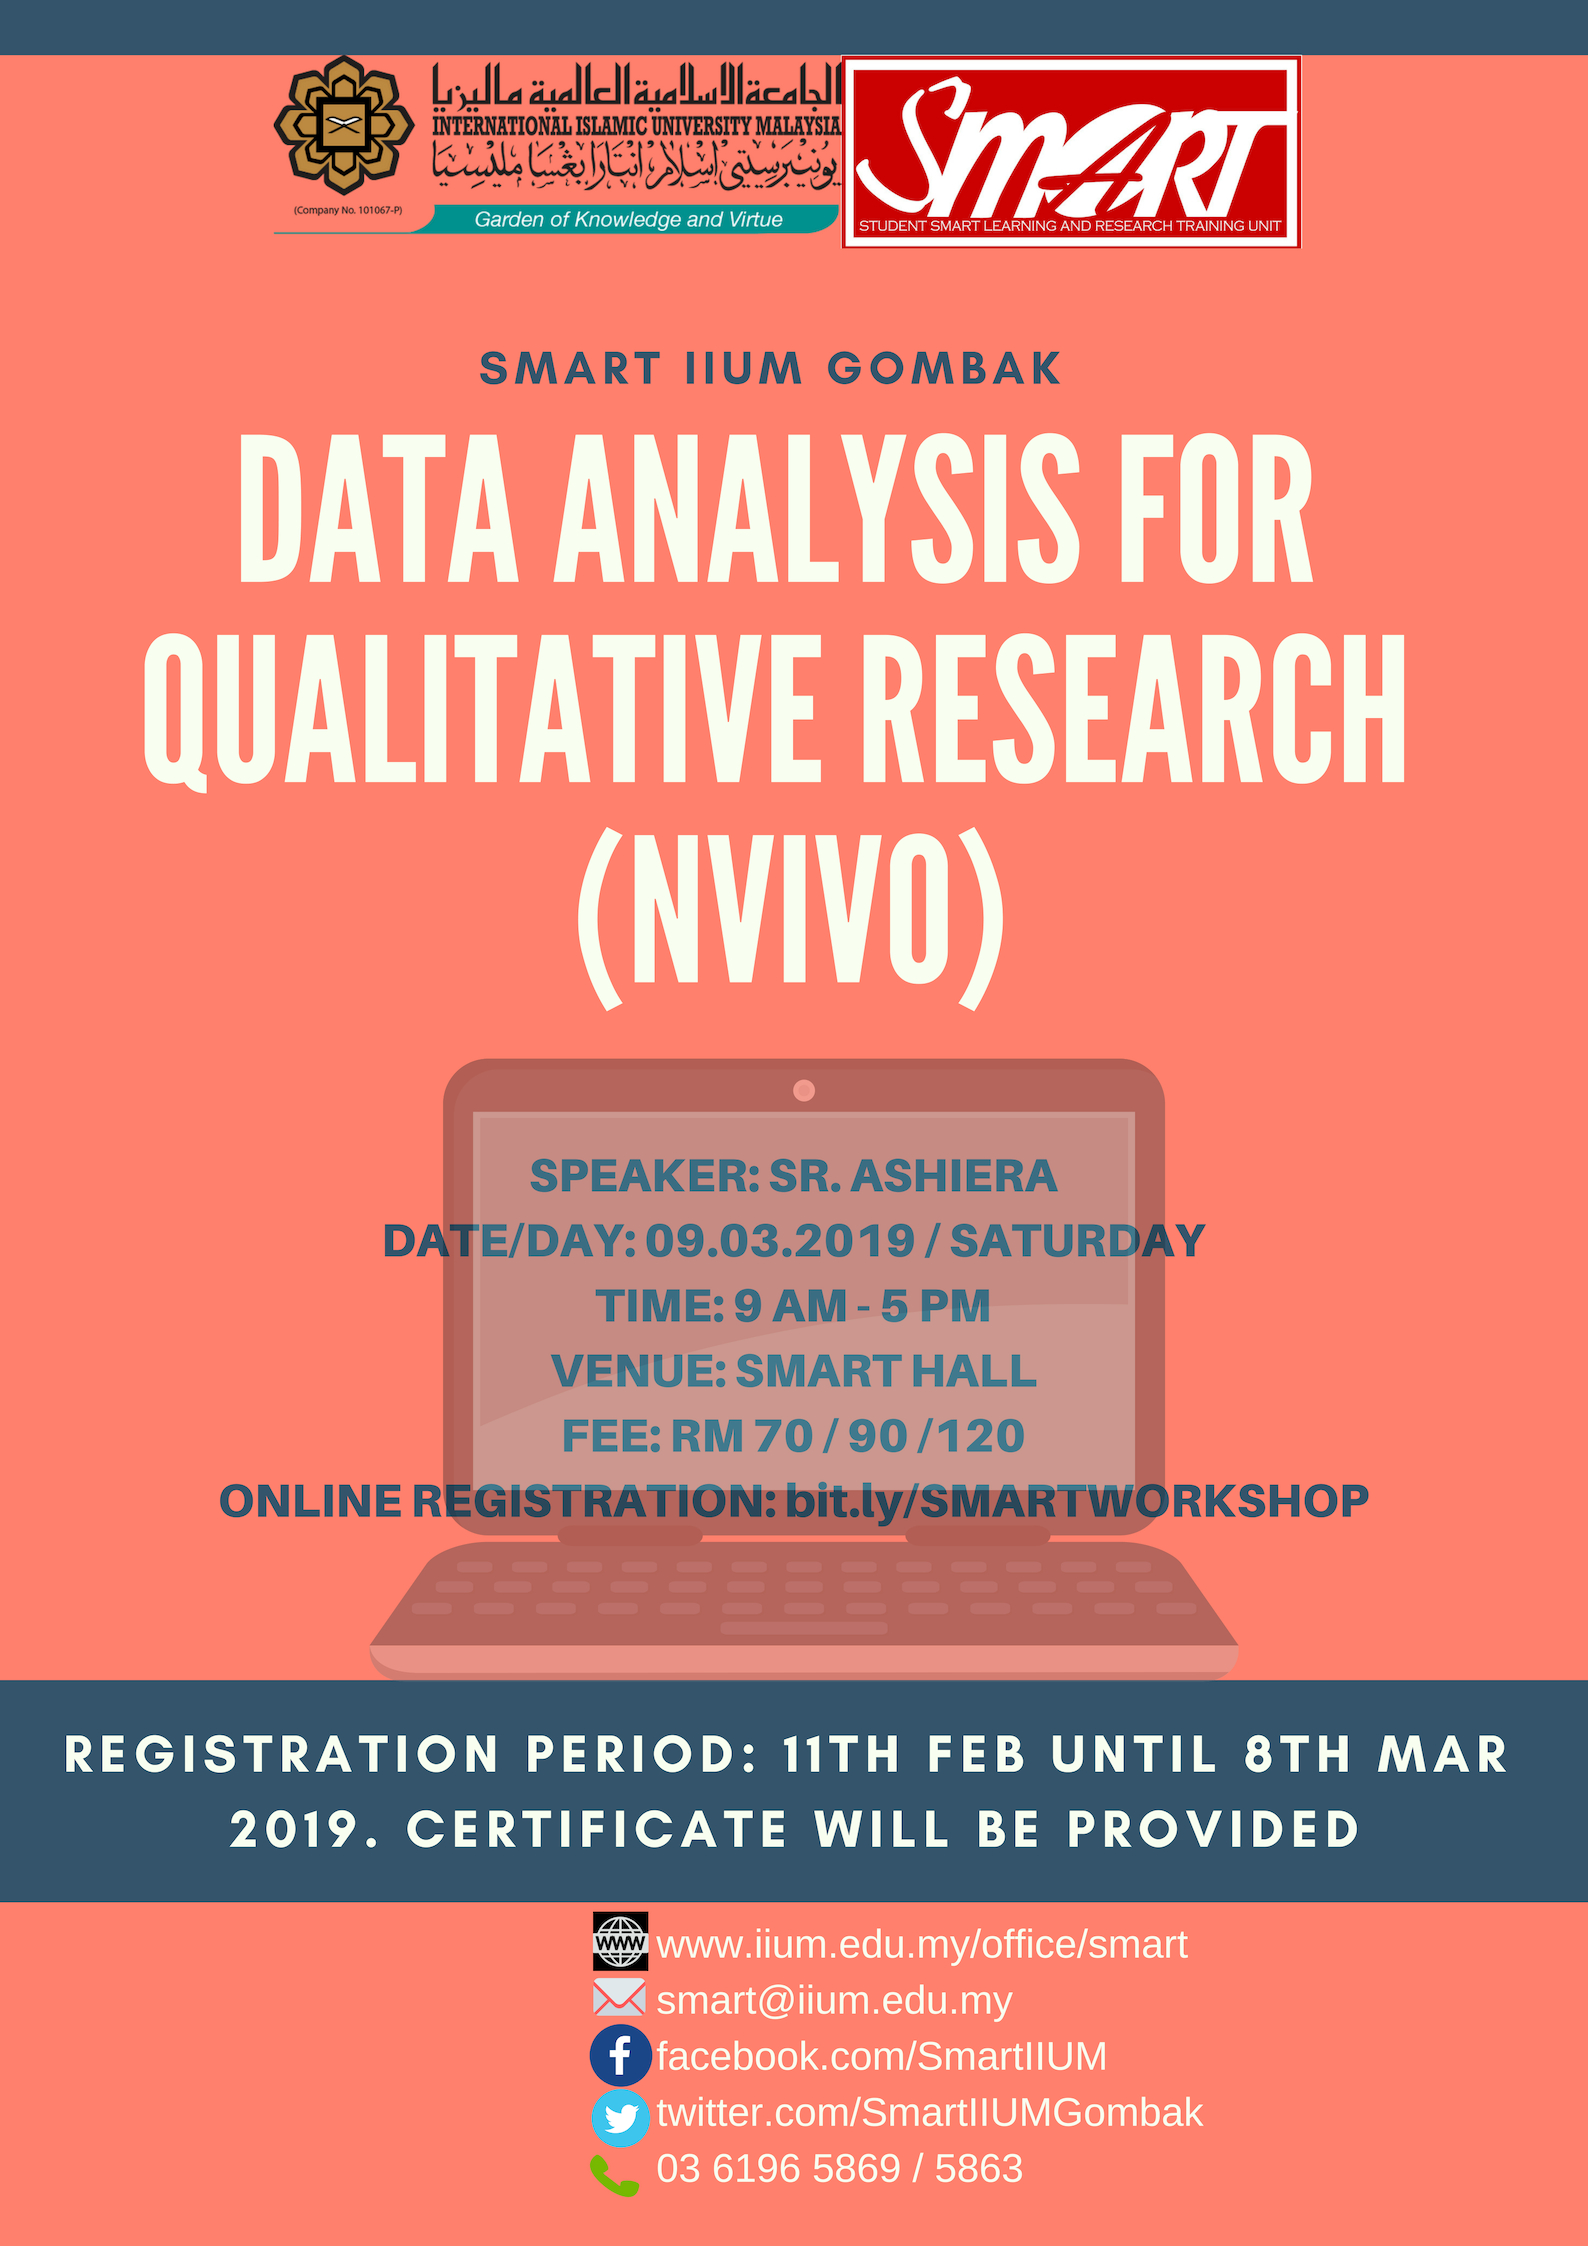 WORKSHOP : DATA ANALYSIS FOR QUALITATIVE RESEARCH (NVIVO)